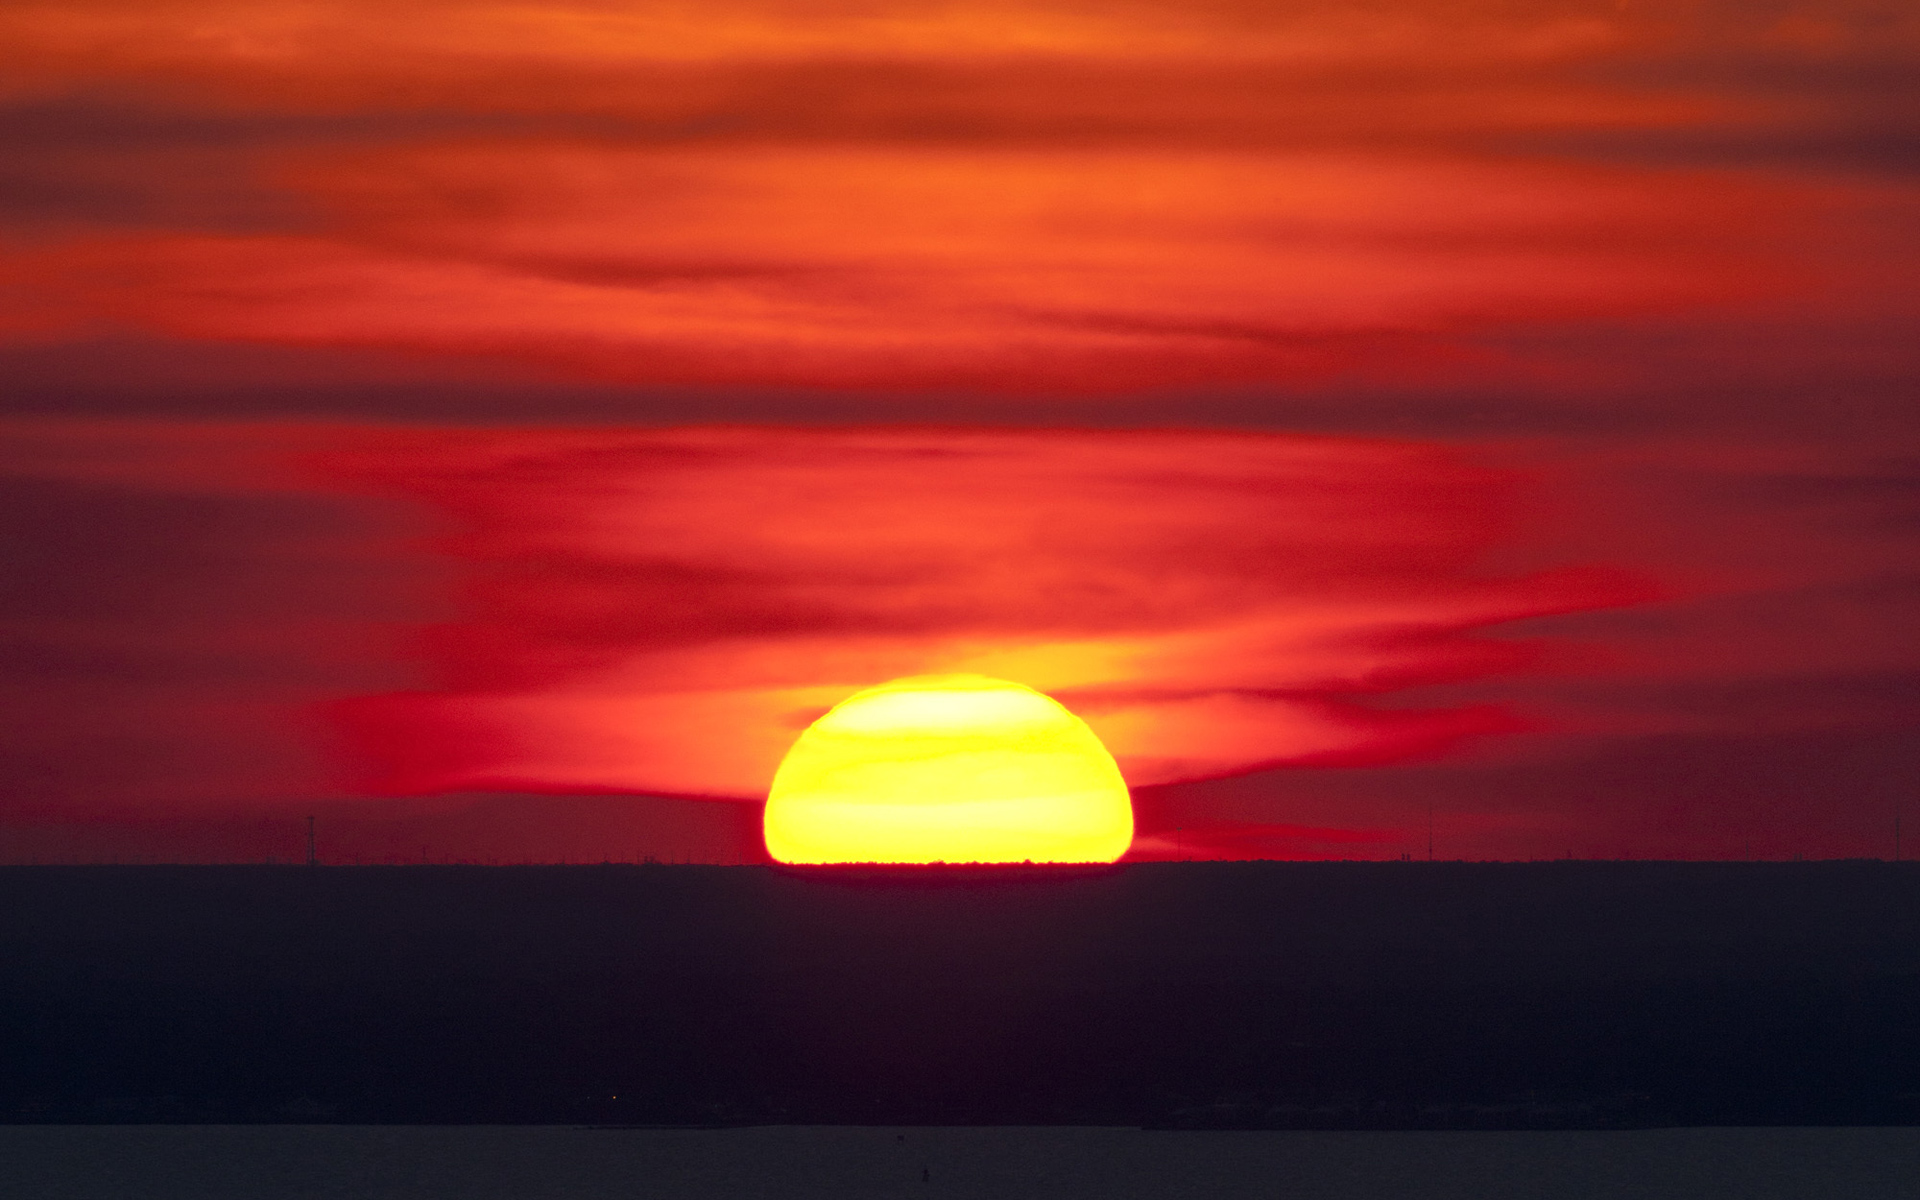 Vivid Sunset Climate Change Vital Signs Of The Planet